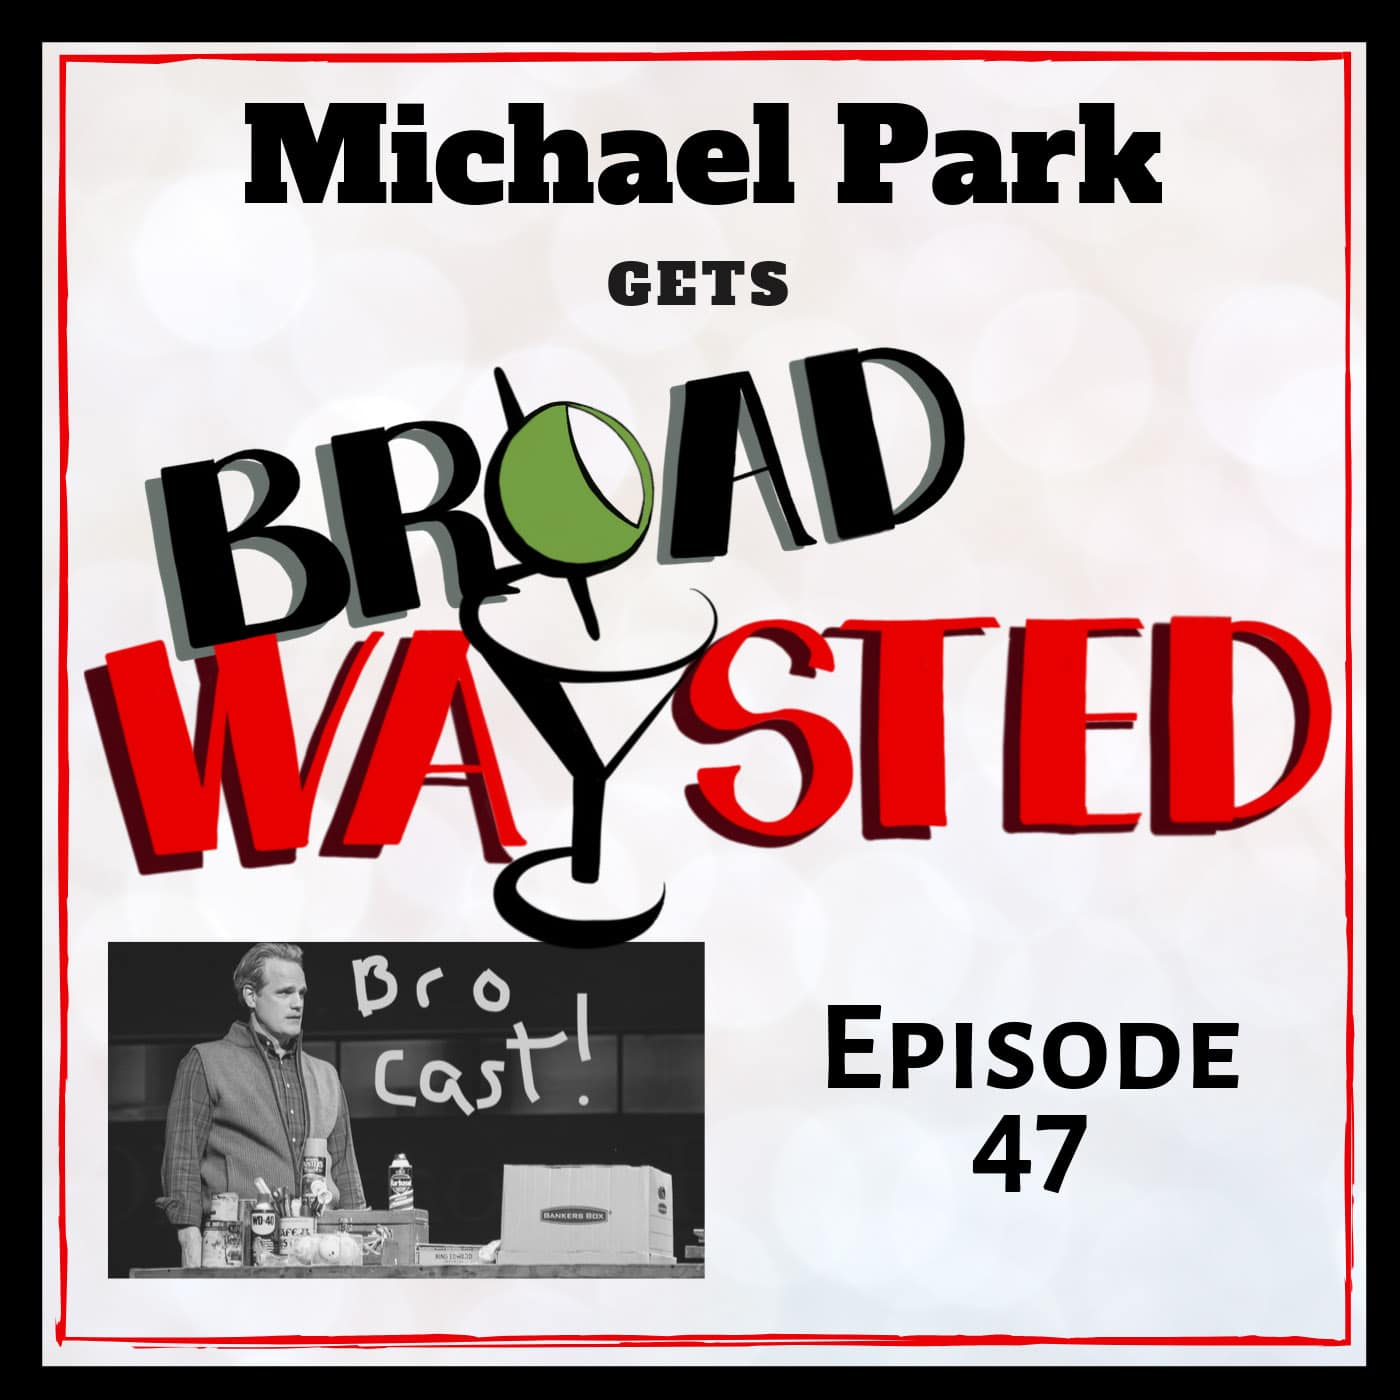 Broadwaysted Ep 47 Michael Park